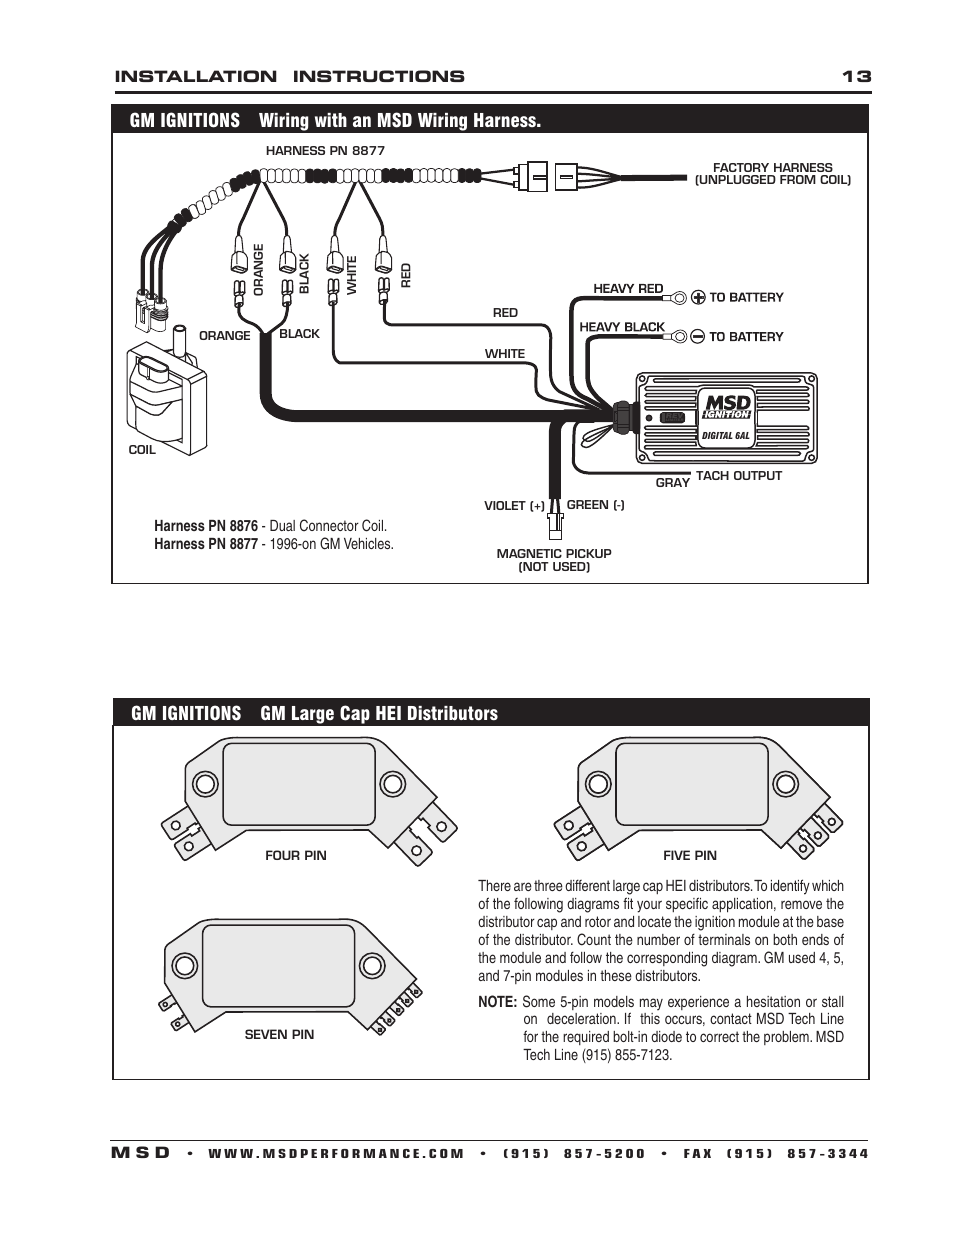 hight resolution of msd 6201 digital 6a ignition control page13 resize